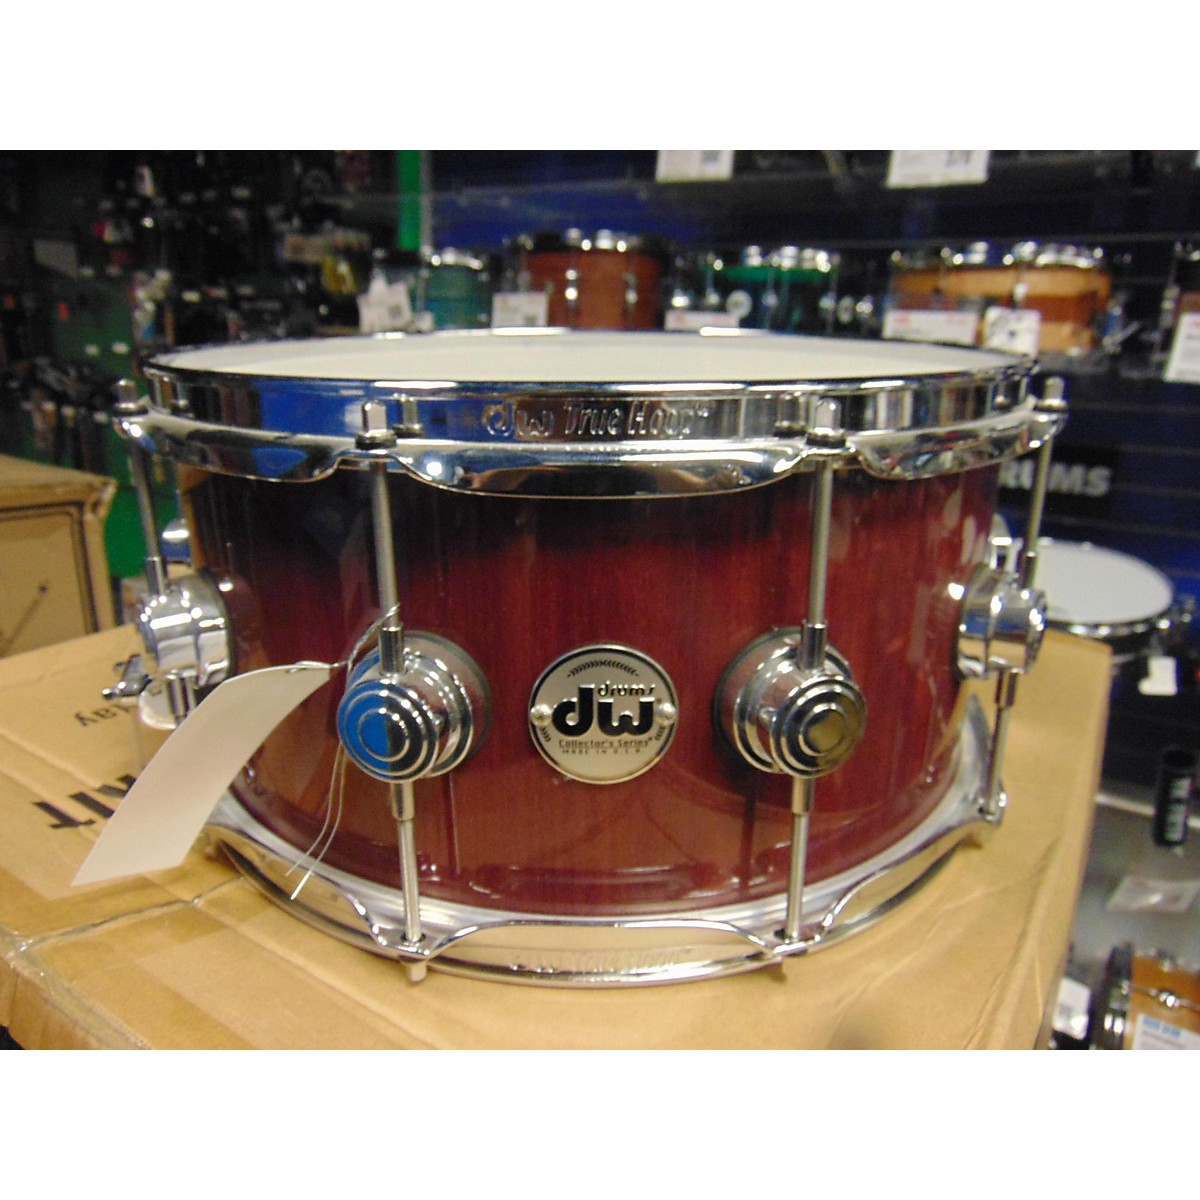 DW 2010s 6.5X14 Collector's Series Snare Drum